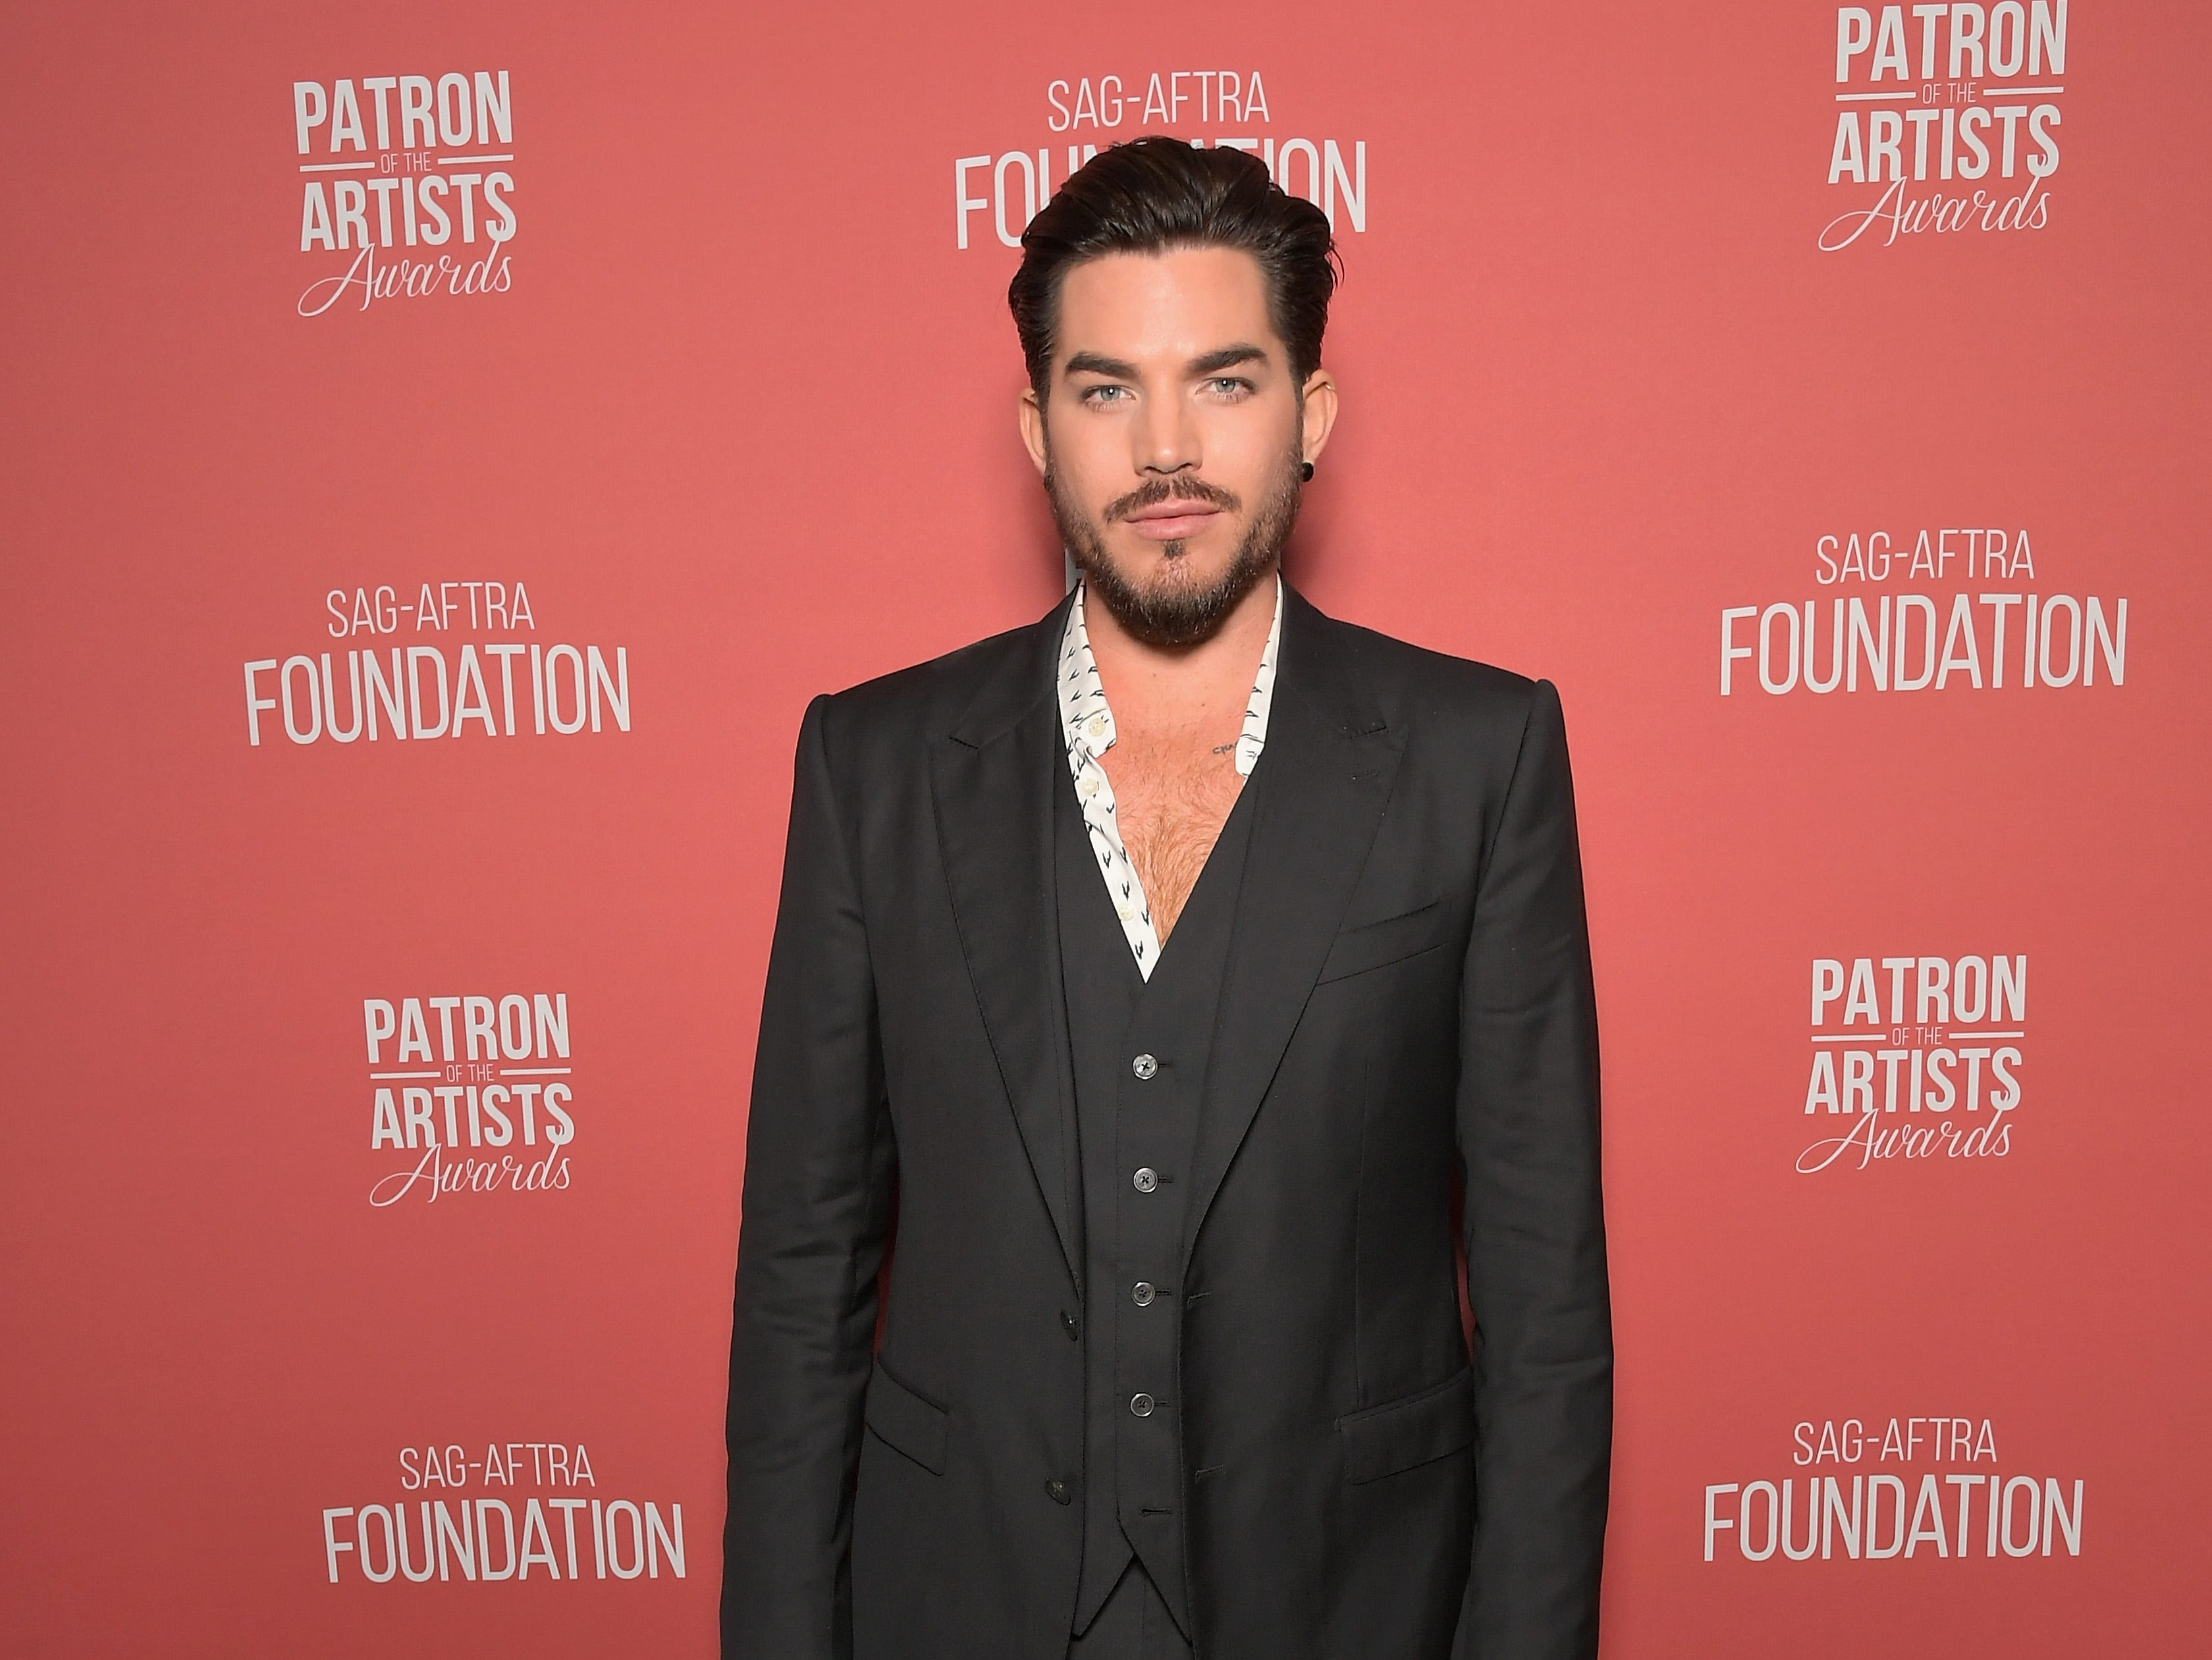 BEVERLY HILLS, CA - NOVEMBER 08:  Adam Lambert attends the SAG-AFTRA Foundation's 3rd Annual Patron of the Artists Awards at the Wallis Annenberg Center for the Performing Arts on November 8, 2018 in Beverly Hills, California.  (Photo by Charley Gallay/Getty Images for SAG-AFTRA Foundation) ORG XMIT: 775247555 ORIG FILE ID: 1059475032